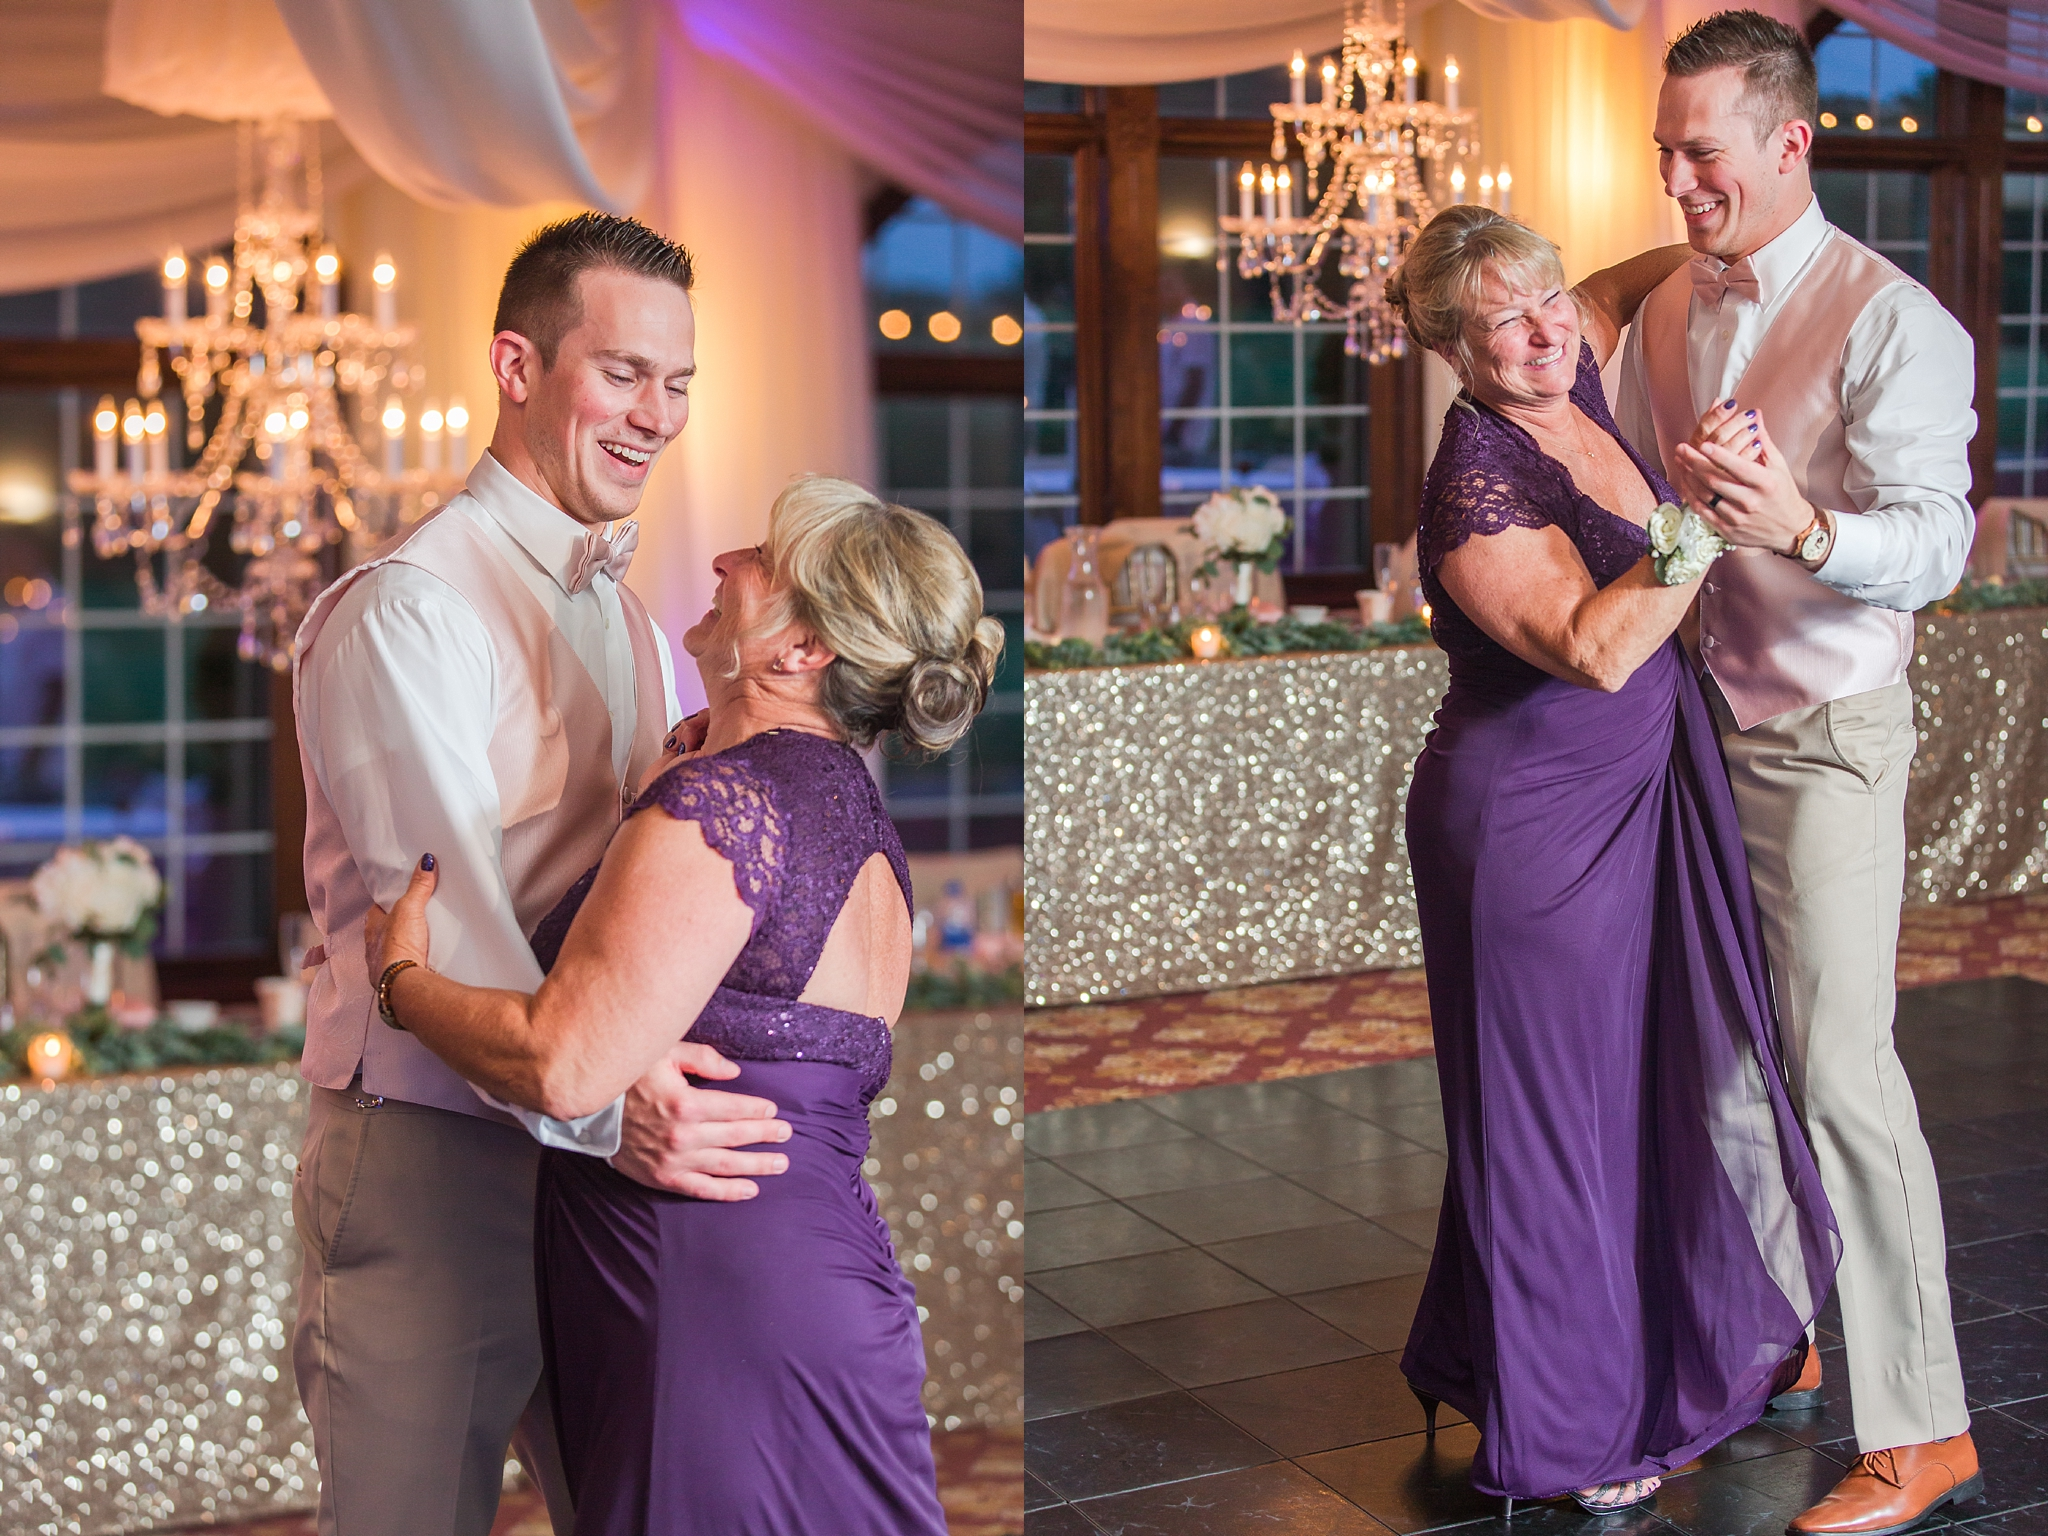 candid-timeless-wedding-photos-at-the-captains-club-in-grand-blanc-michigan-by-courtney-carolyn-photography_0110.jpg